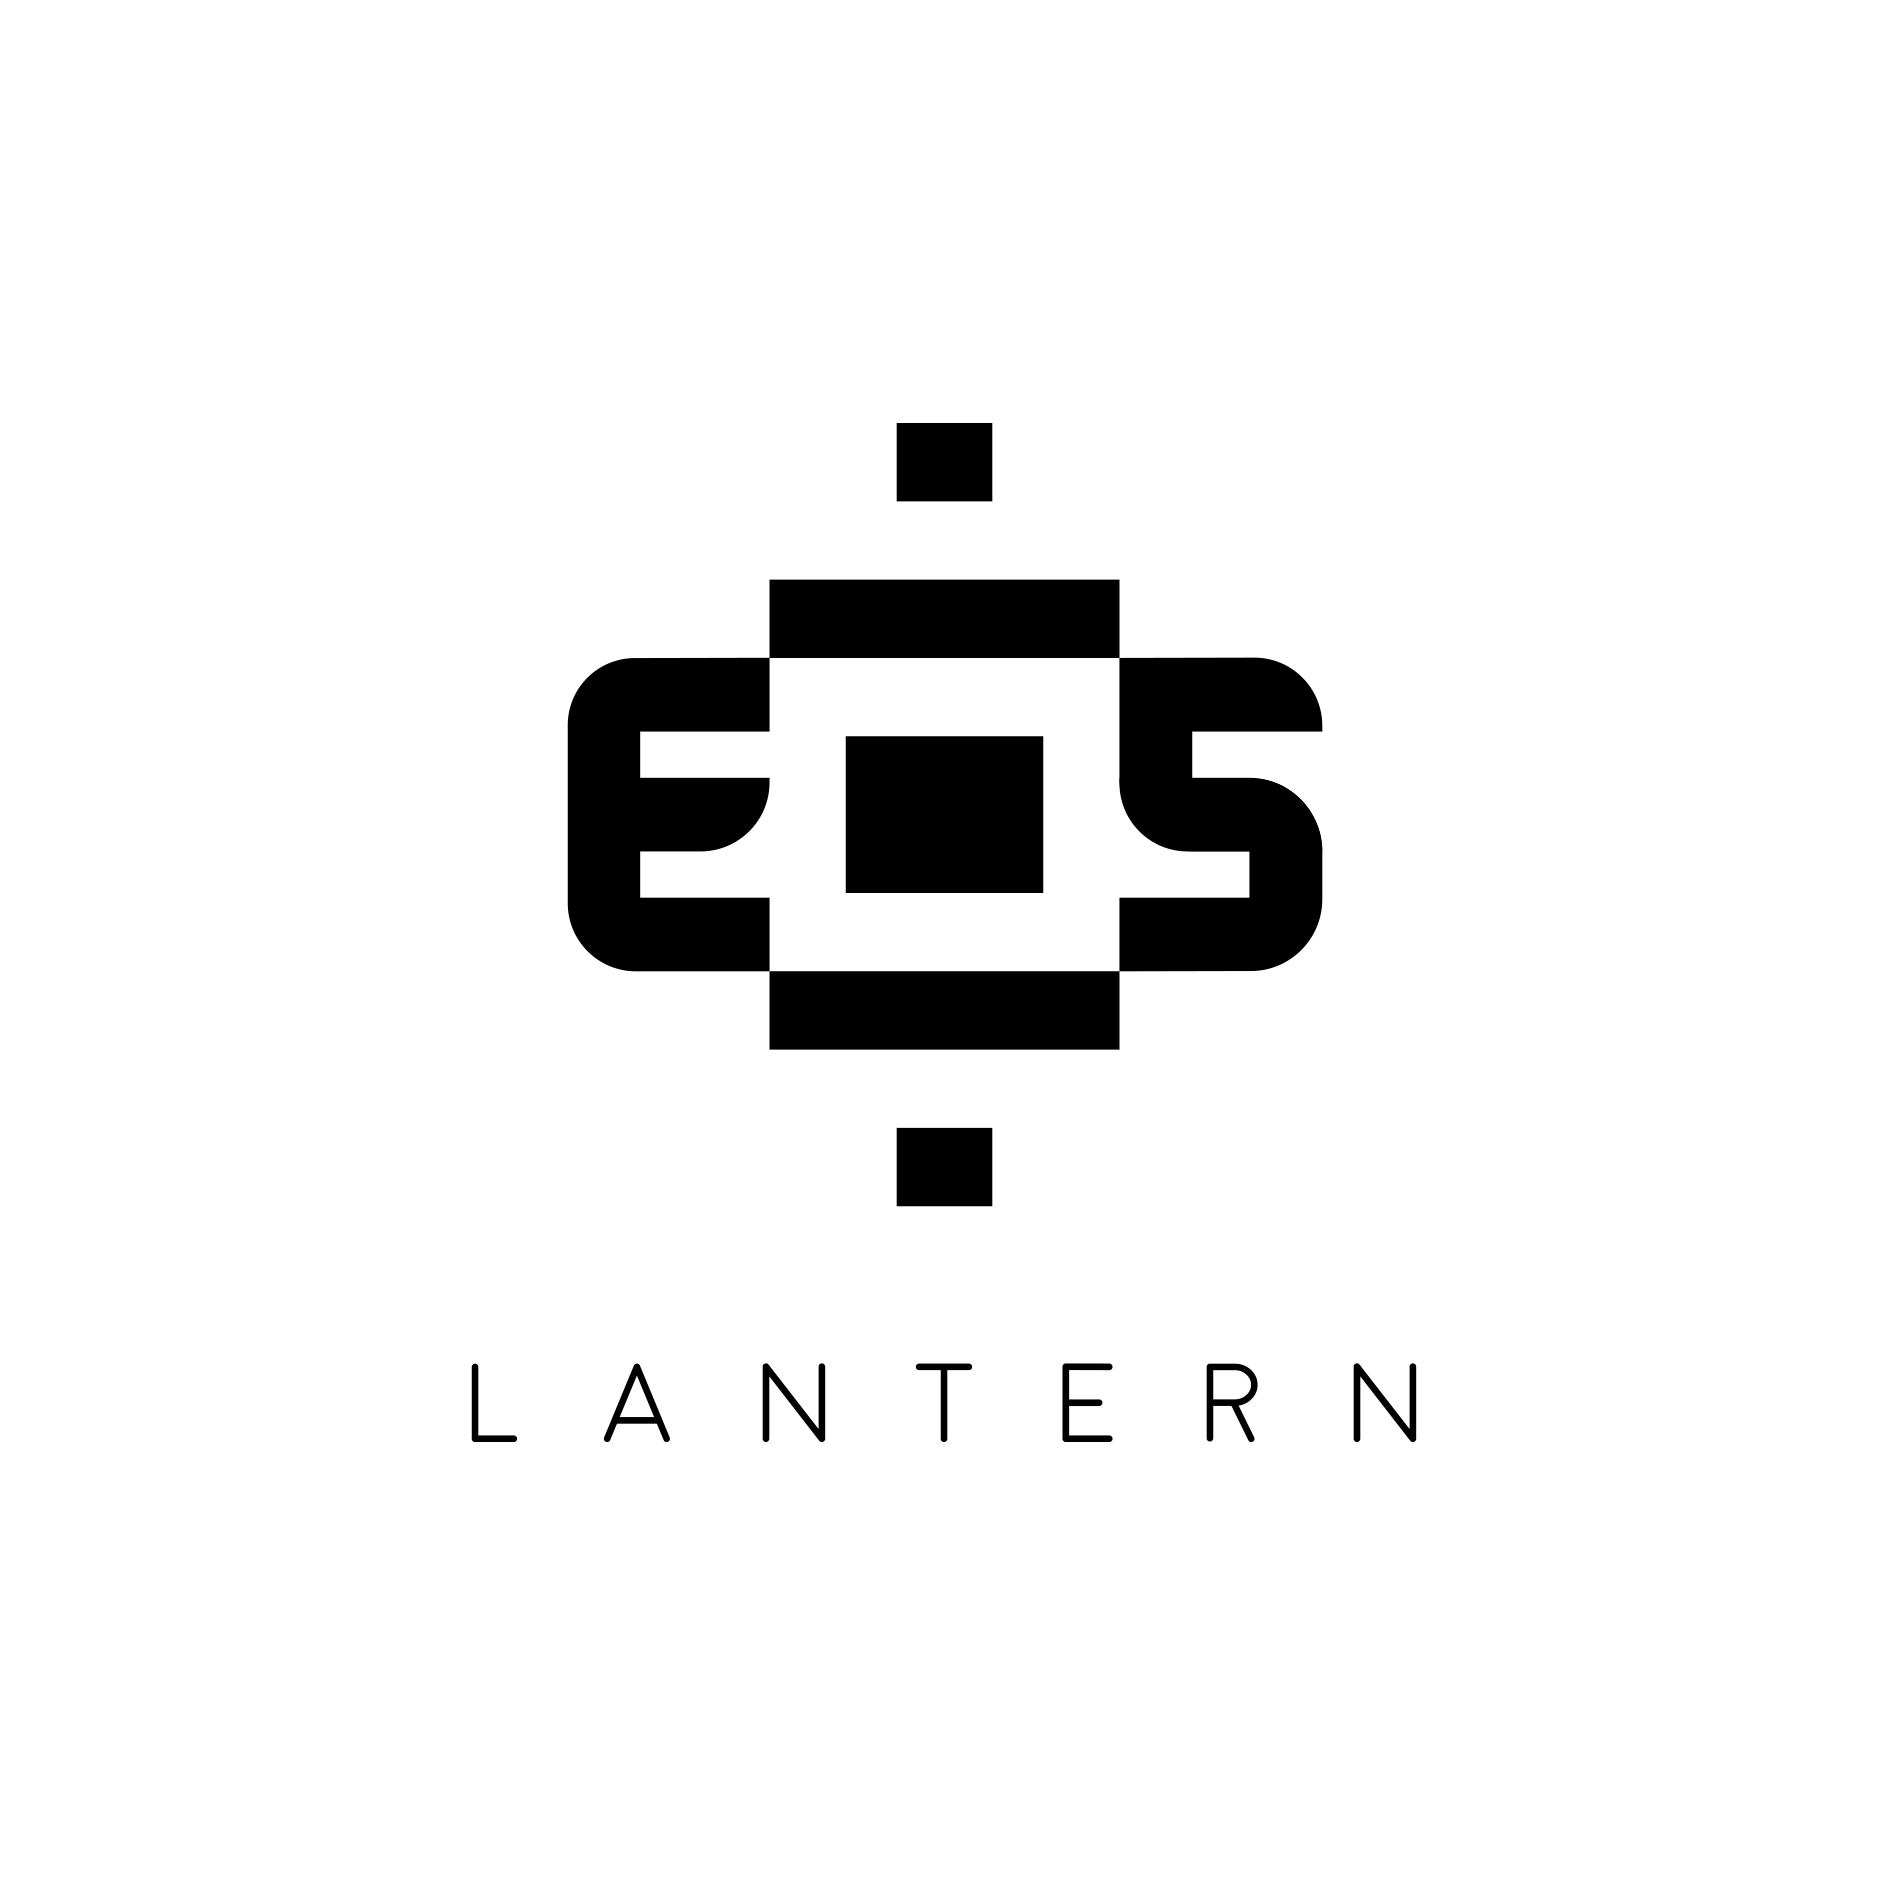 EOS Lantern   EOS Lantern is a online shop focuses on providing traditional and cultural lantern in California, USA.